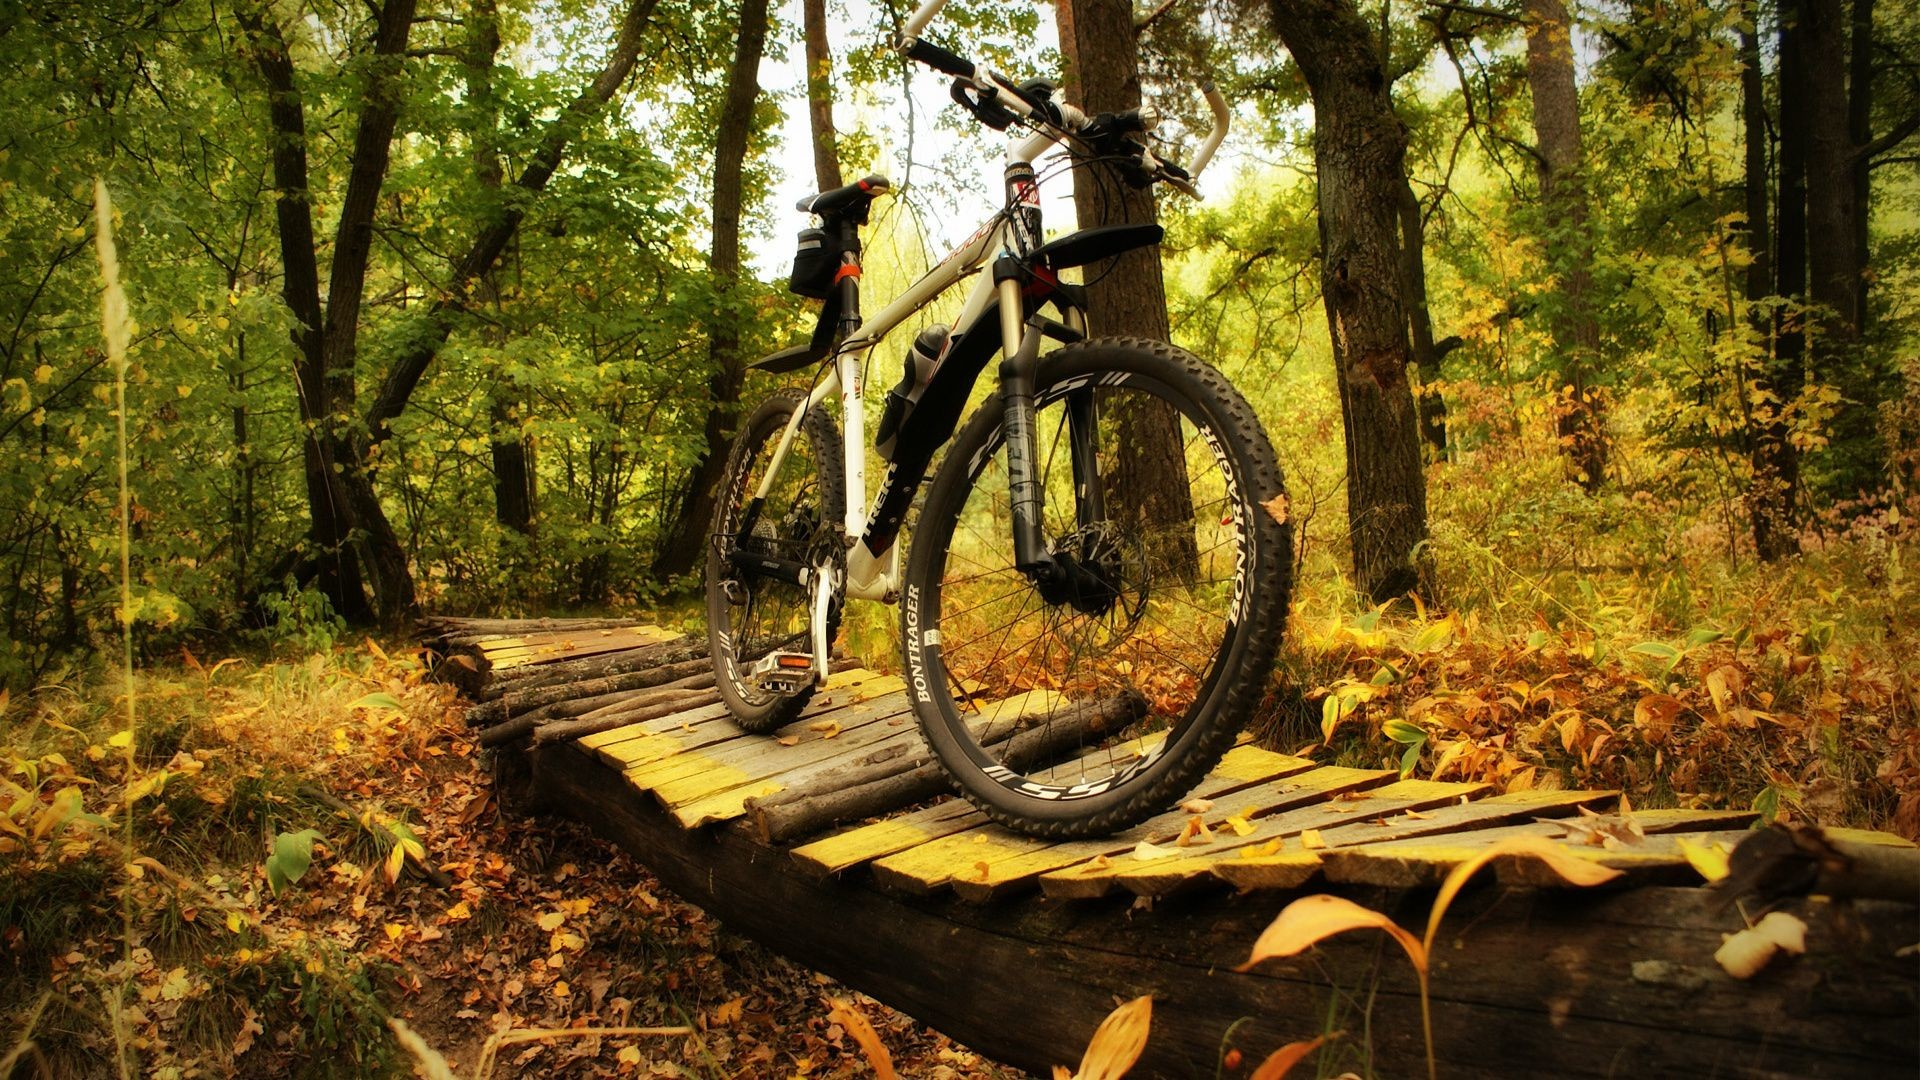 Res: 1920x1080, hd wallpaper sport bike forest trek on the pictures